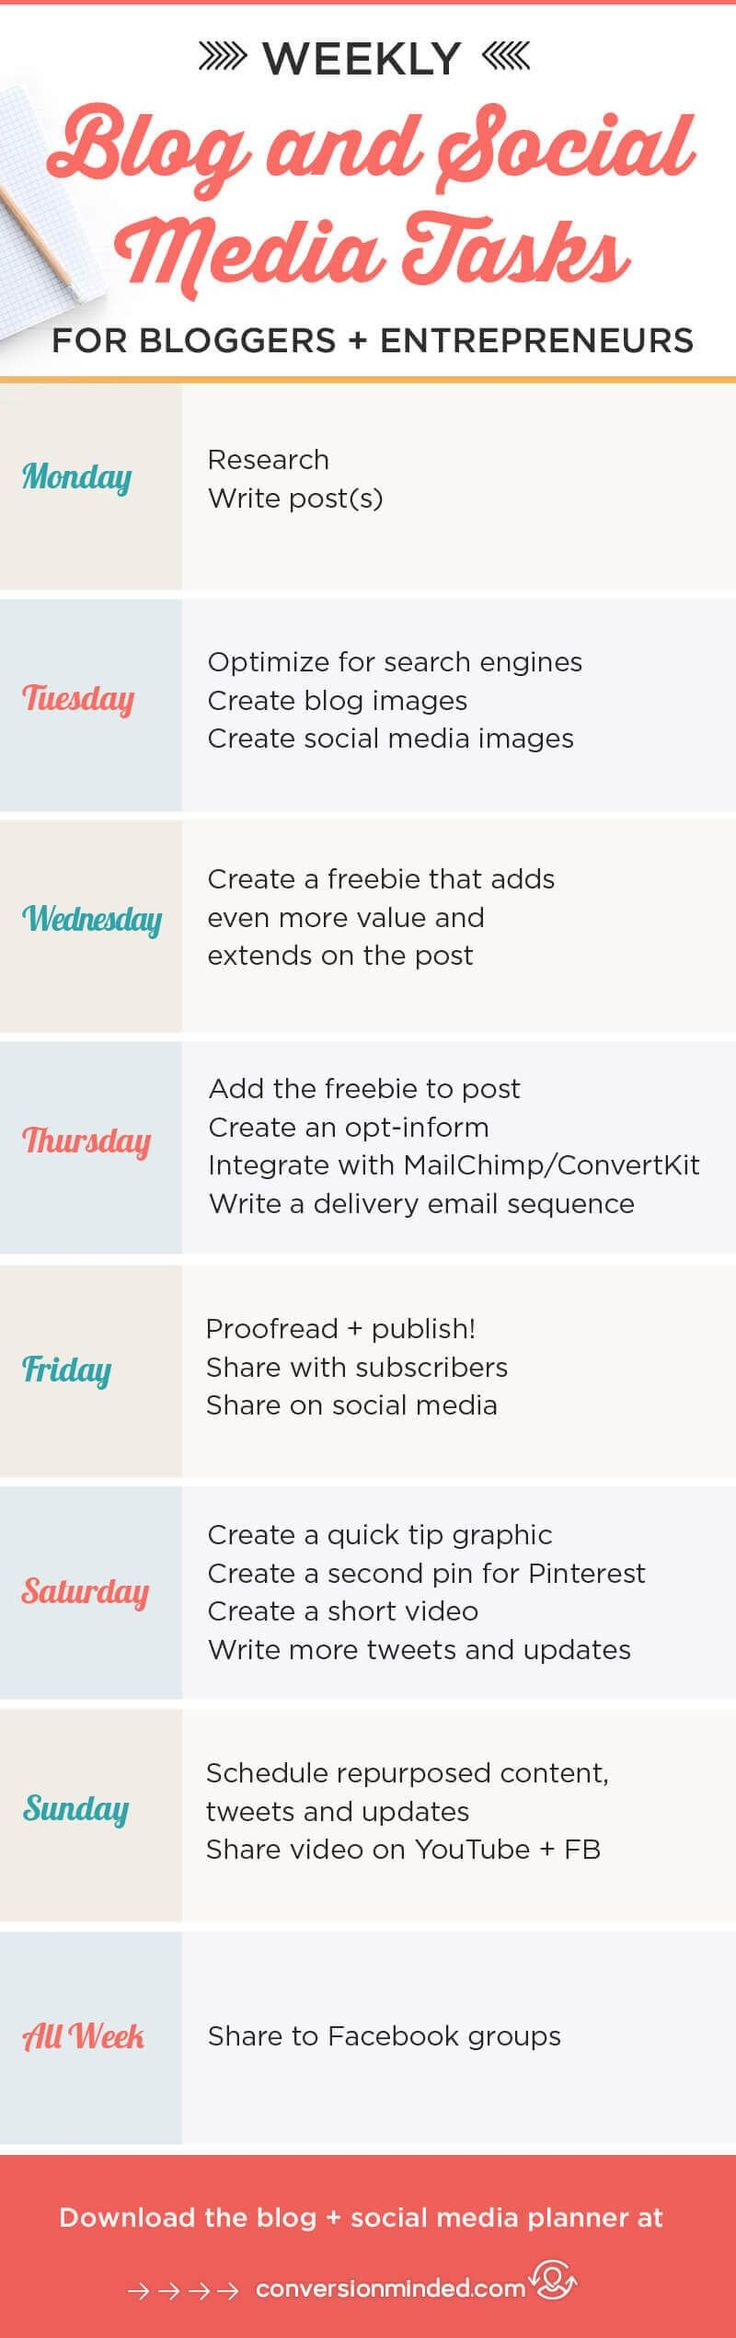 Want to sell your products and make money with your blog? First, you need to build your audience! This post includes the exact weekly blog tasks plus a downloadable social media plan to help you drive incredible amounts of traffic. Click through to find out exactly what you should be doing each week!